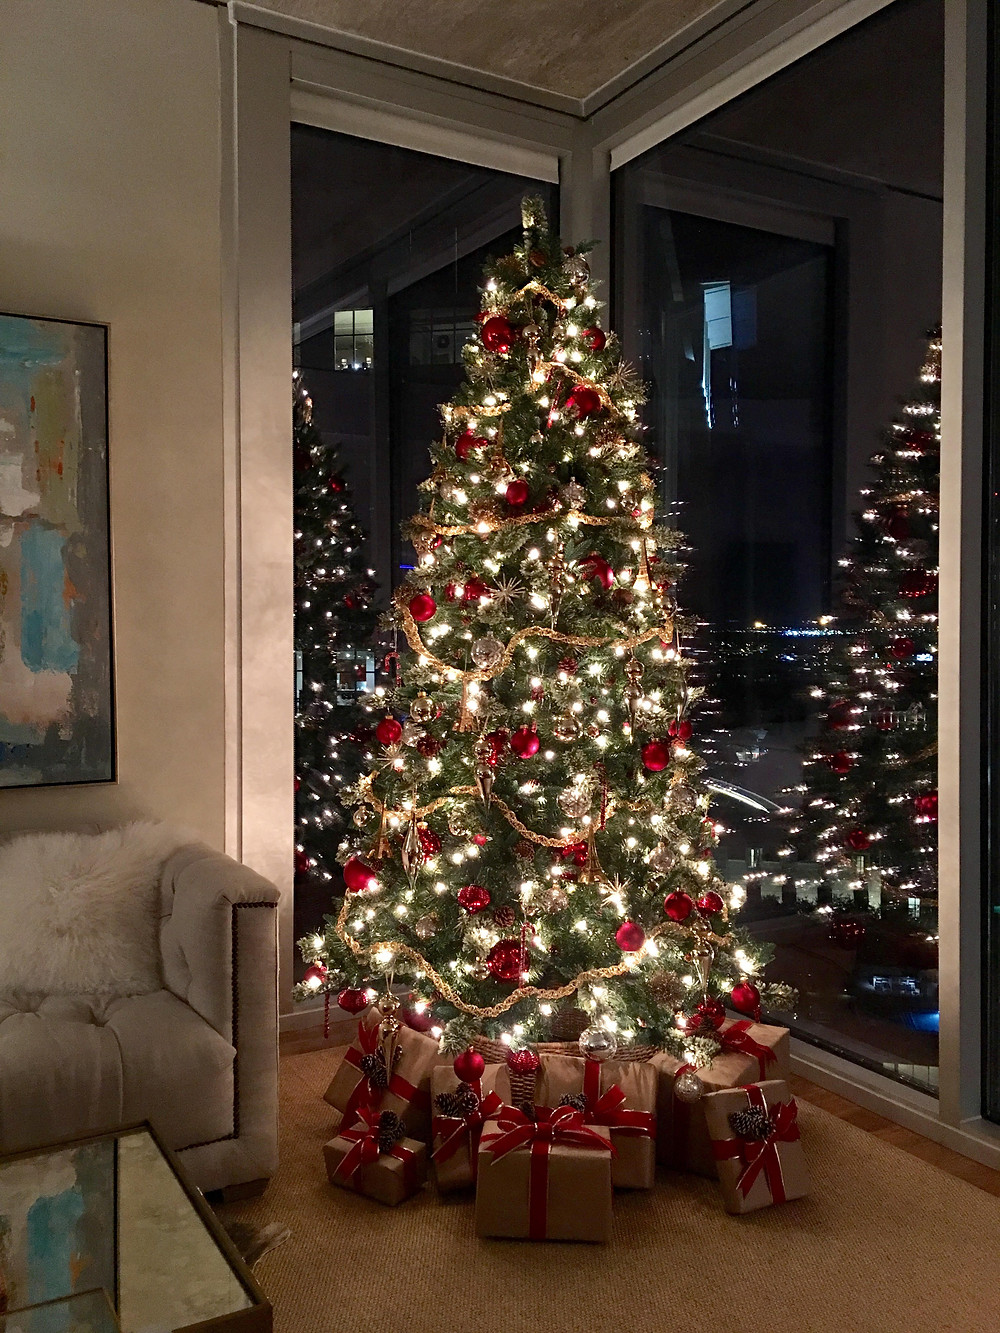 How To Decorate Your Christmas Tree | Hello_Francois | Dallas Men's Fashion & Lifestyle Blogger